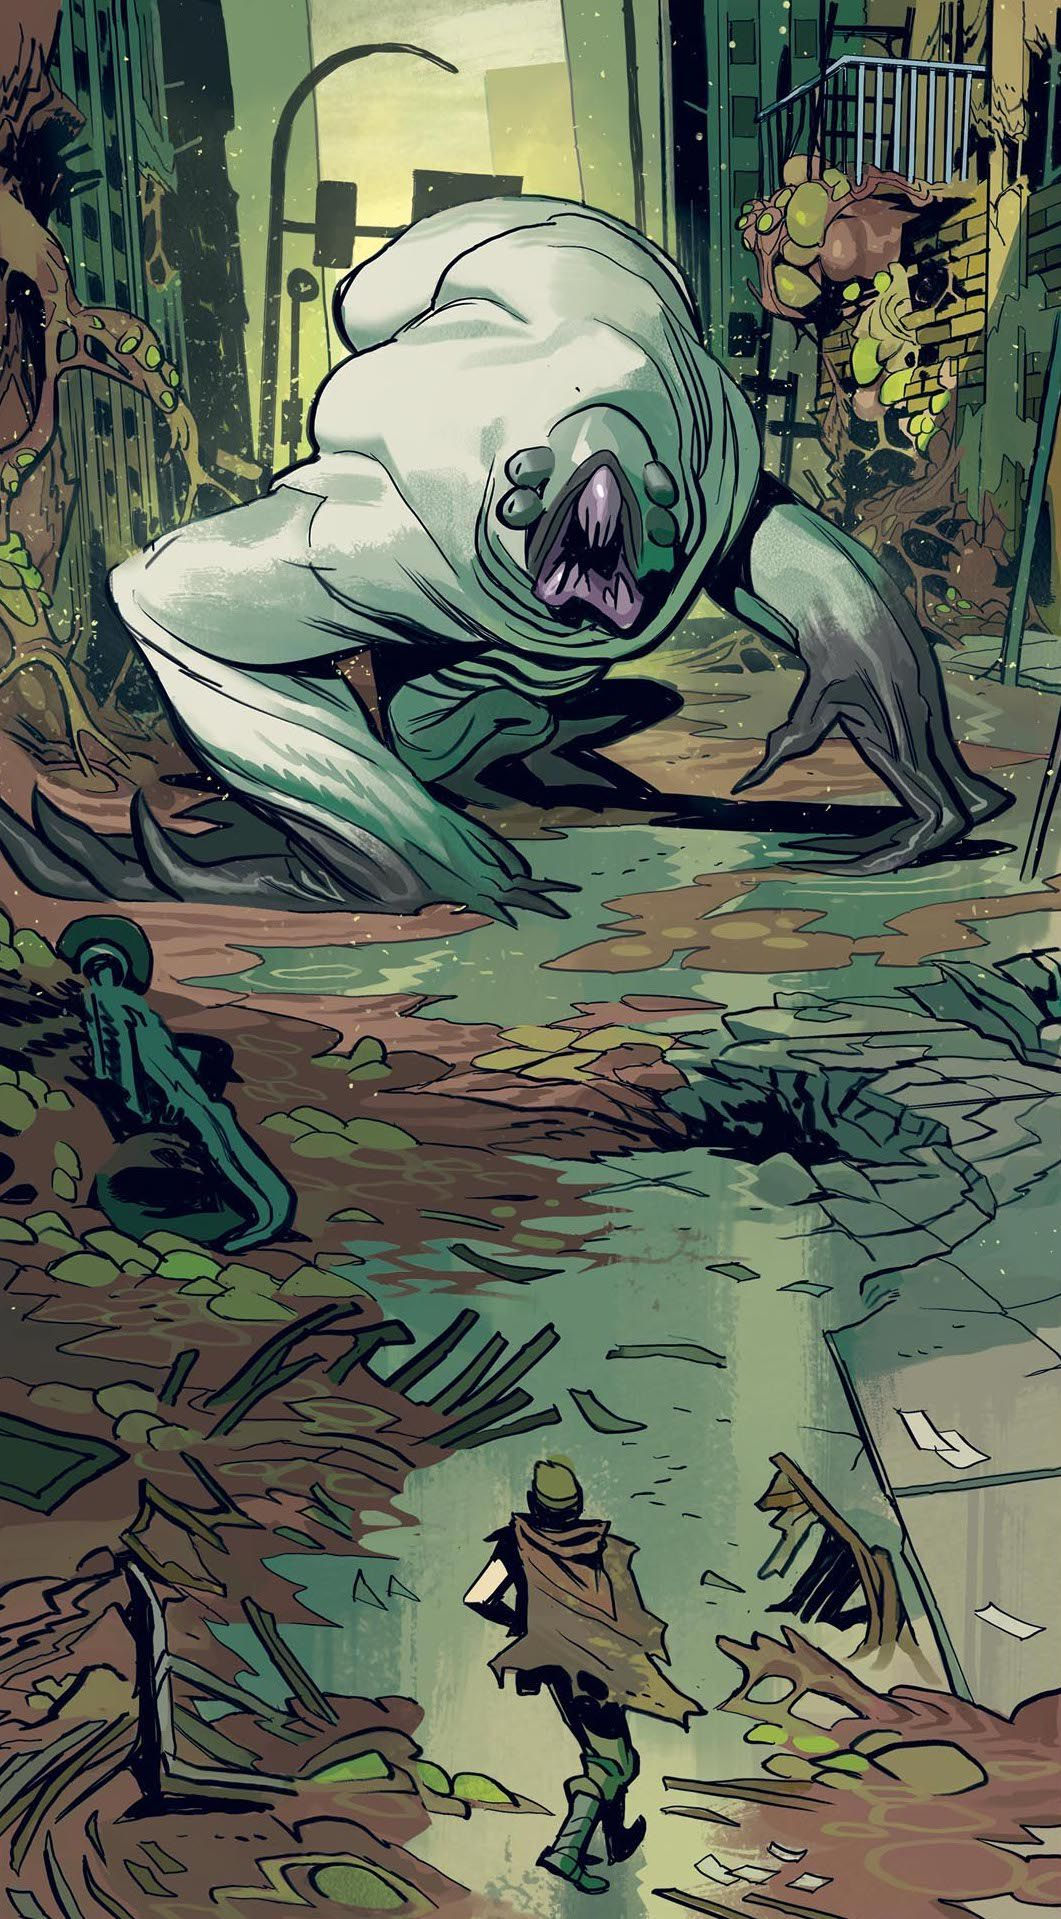 Oblivion Song #1 - coming across a giant four-eyed monster